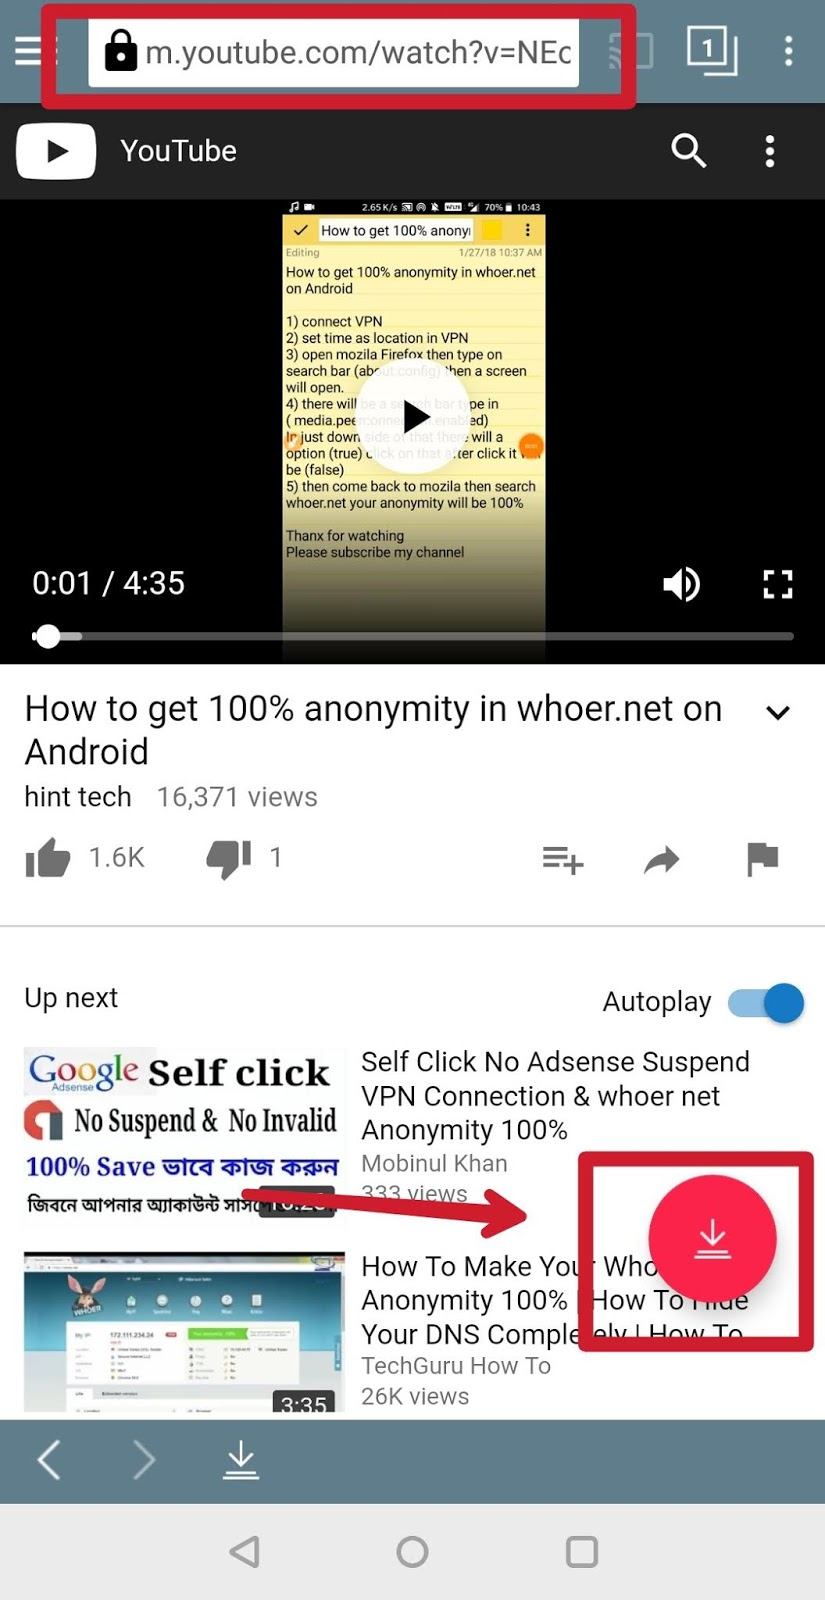 download youtube videos android apk